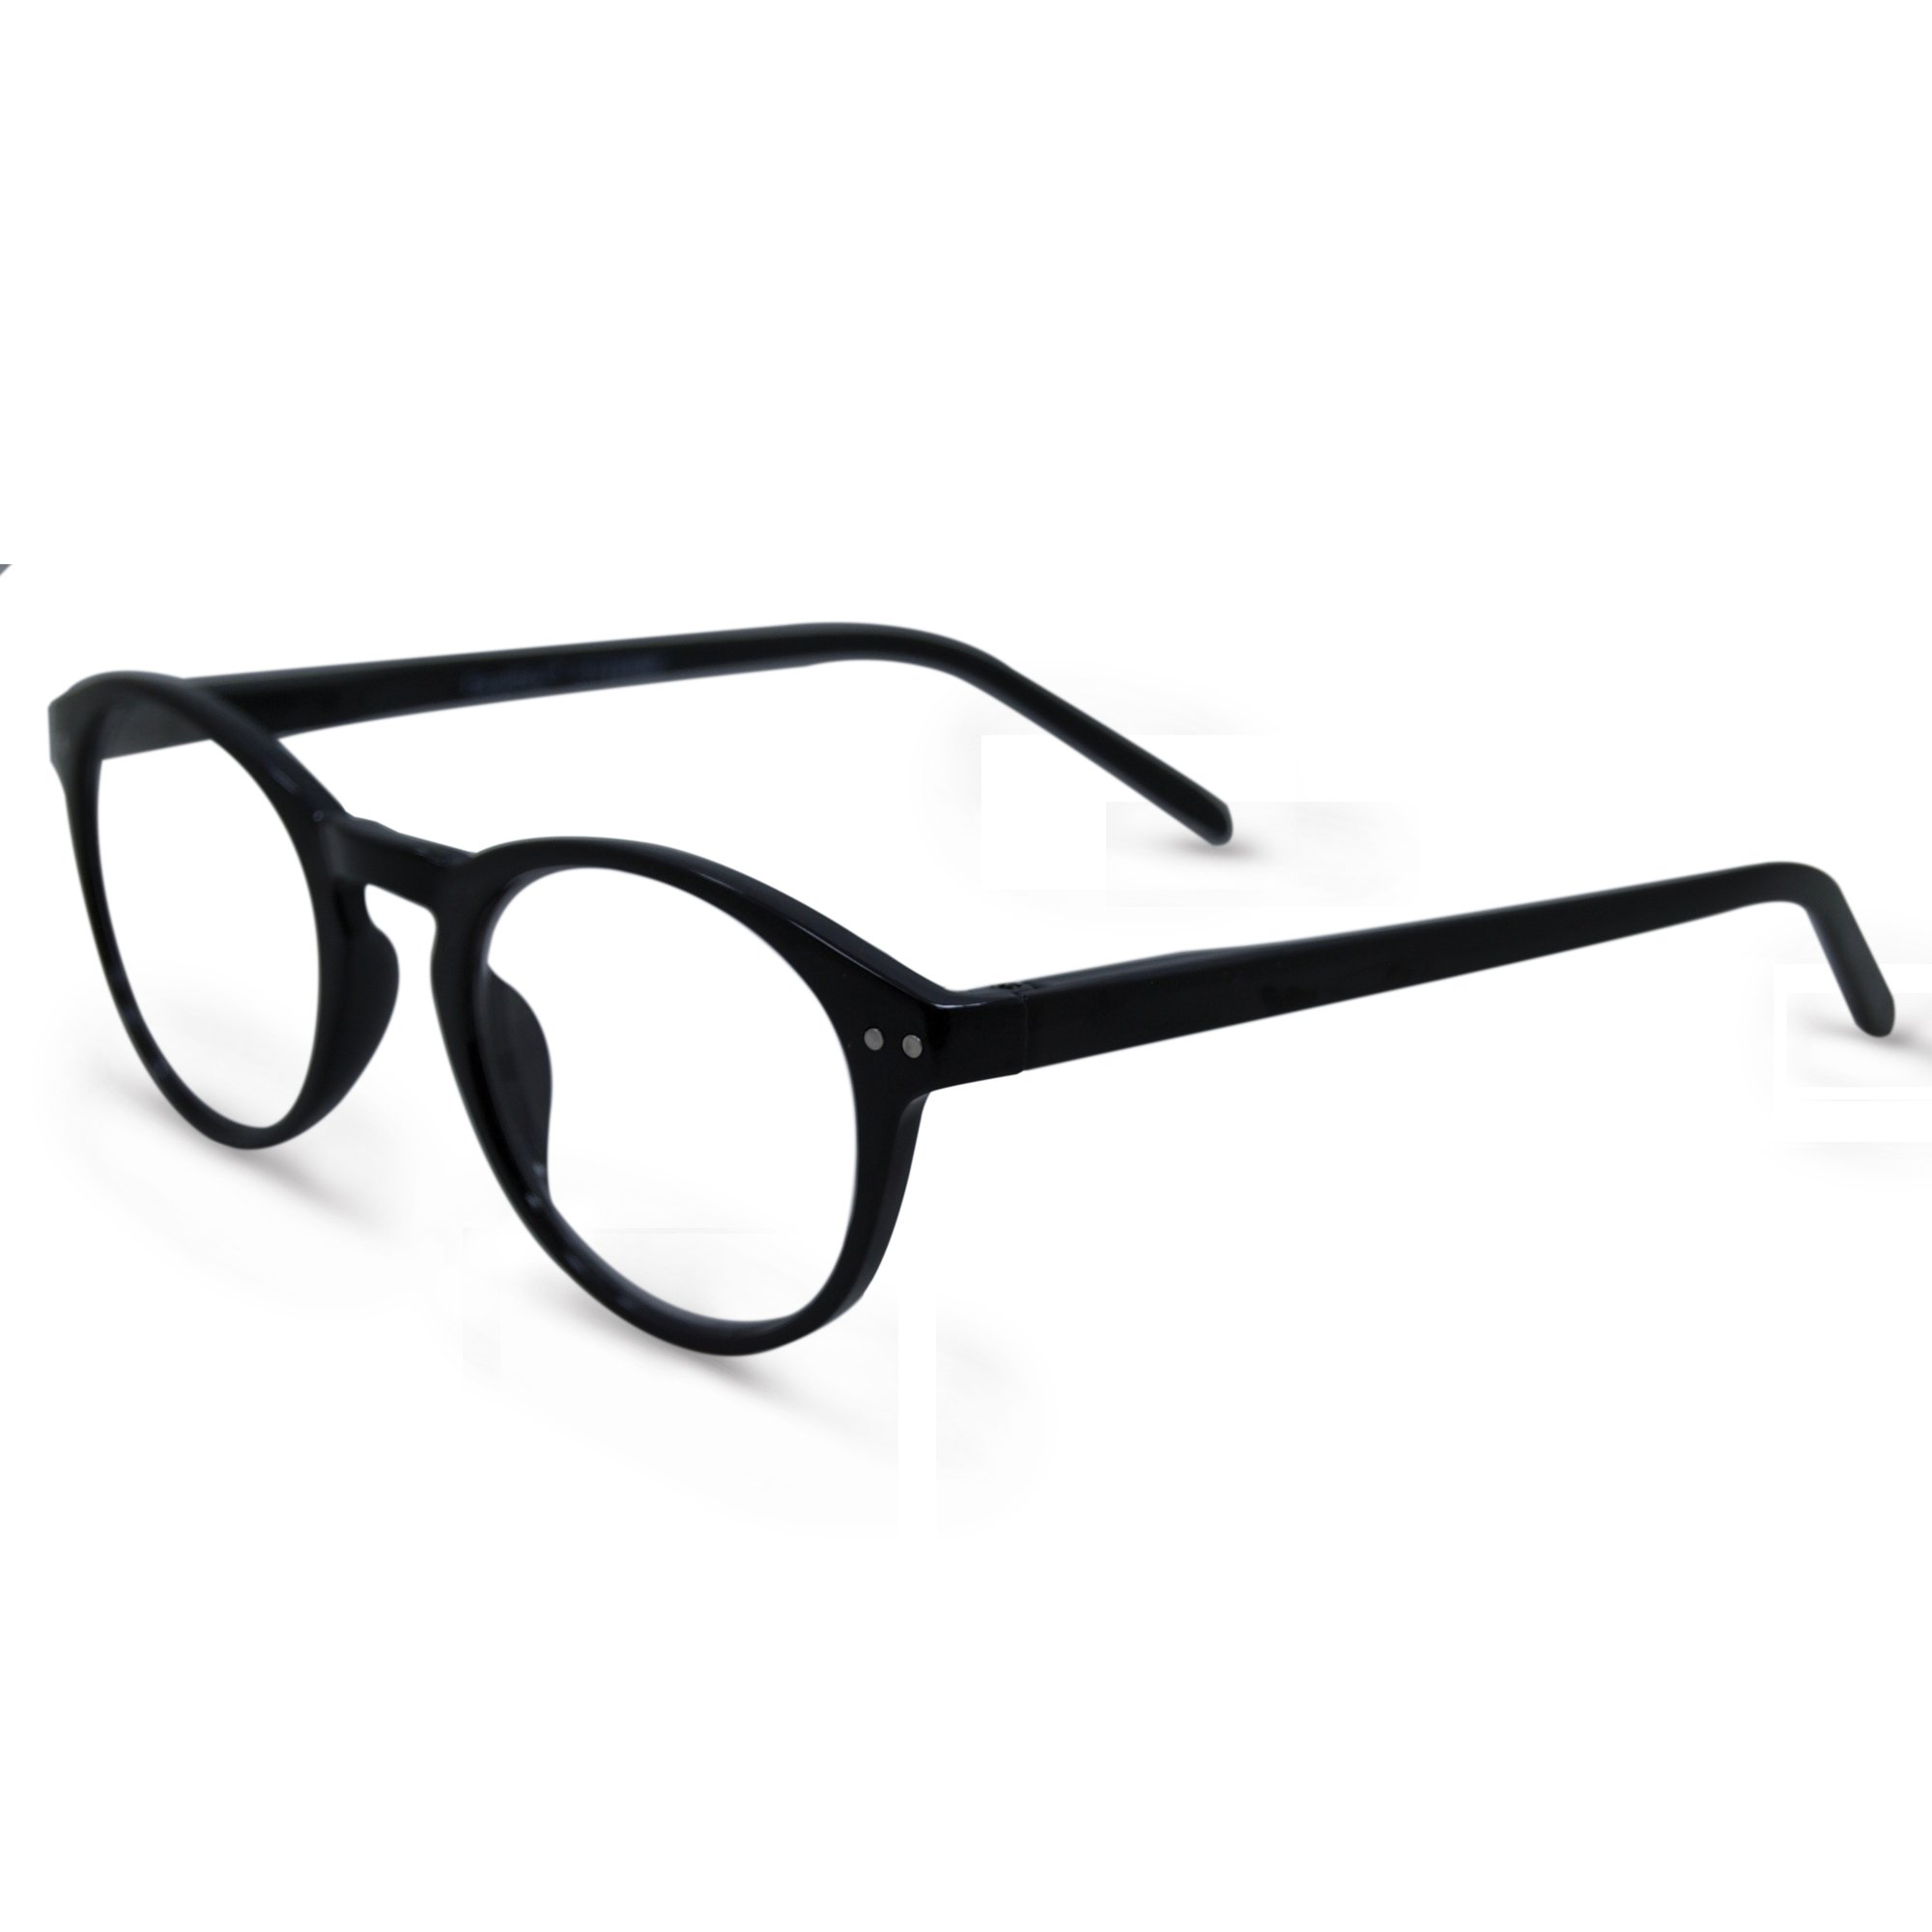 In Style Eyes Optic Vision Progressive BiFocal Glasses/Black 2.50